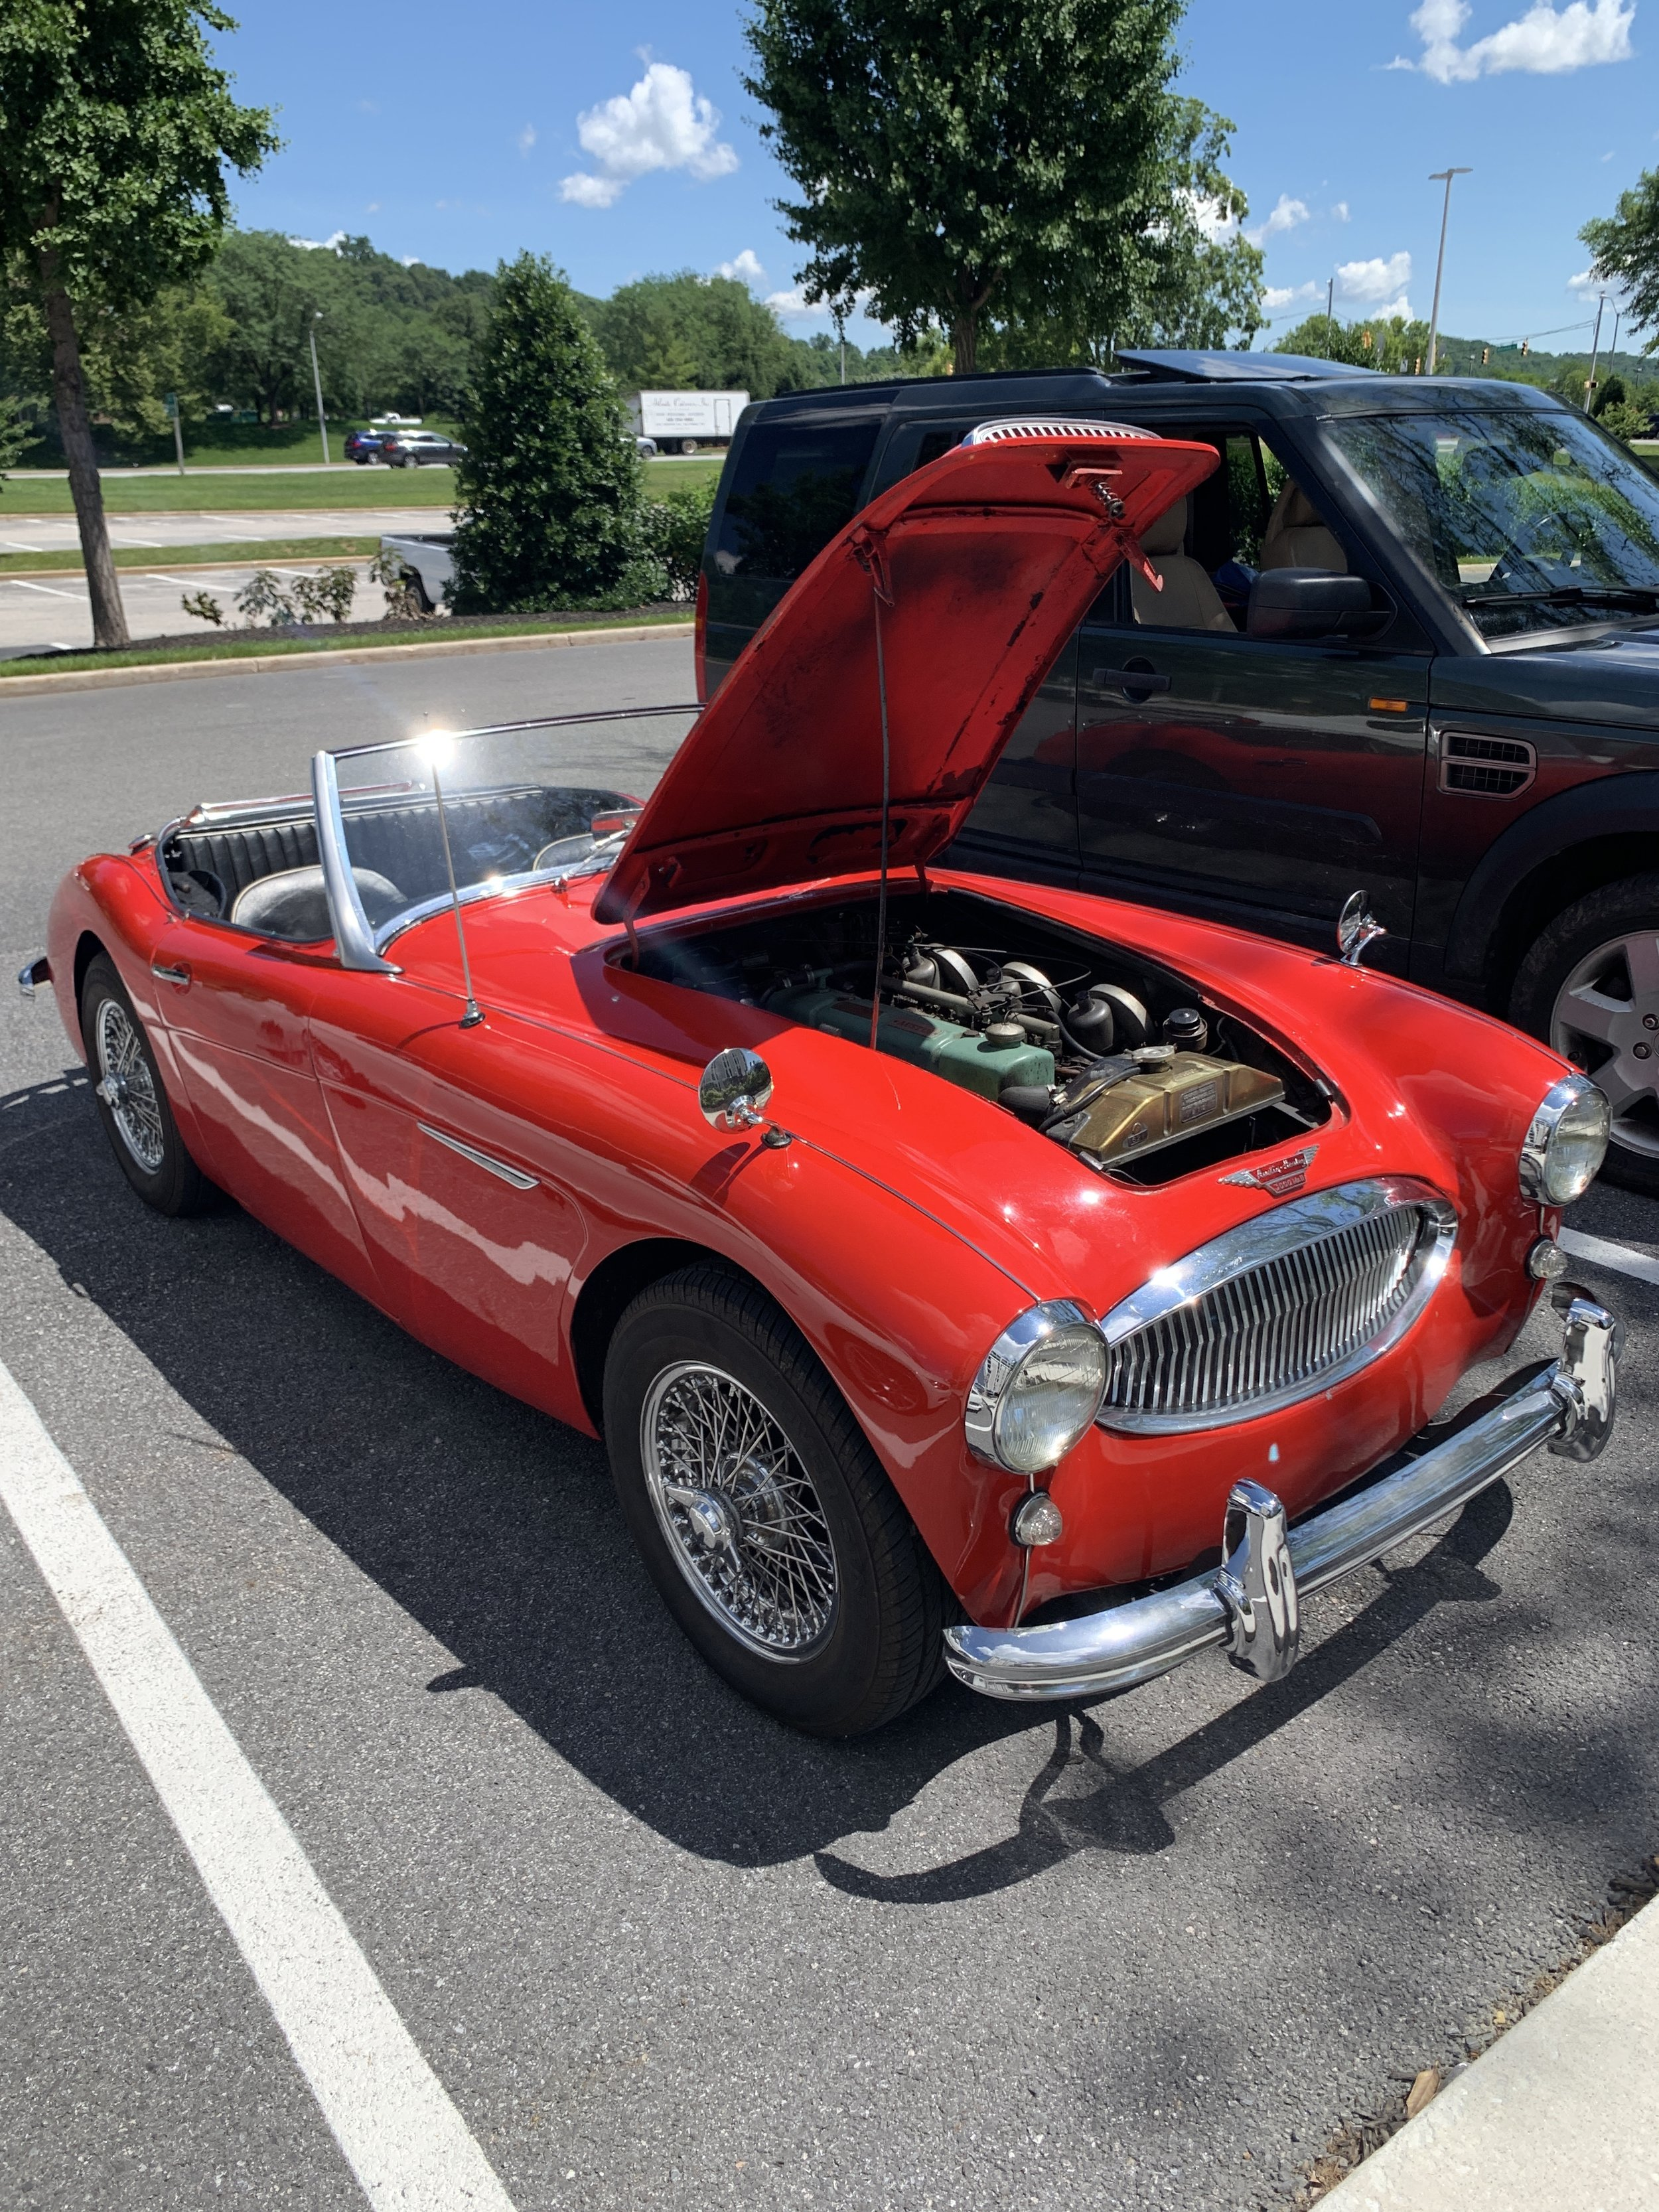 Rover Day had a few classics come visit. Mike Murphy was welcomed with his Austin Healy